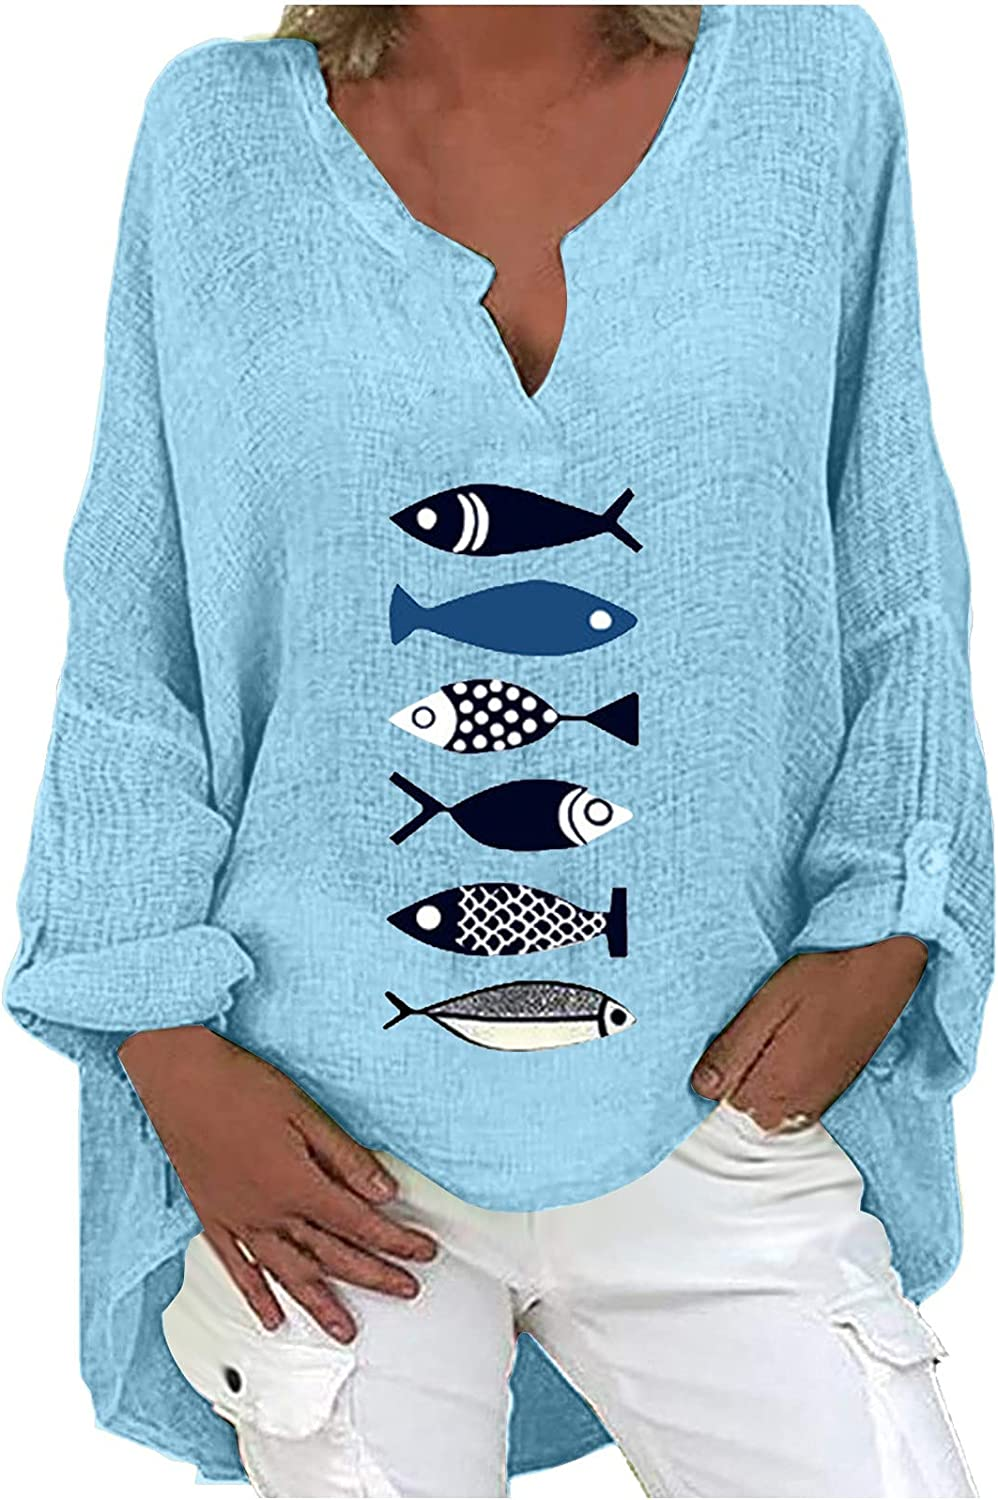 Women Plus Size Cute Graphic Challenge the lowest price Tops Loose Printing Casual Tunic Lo Over item handling